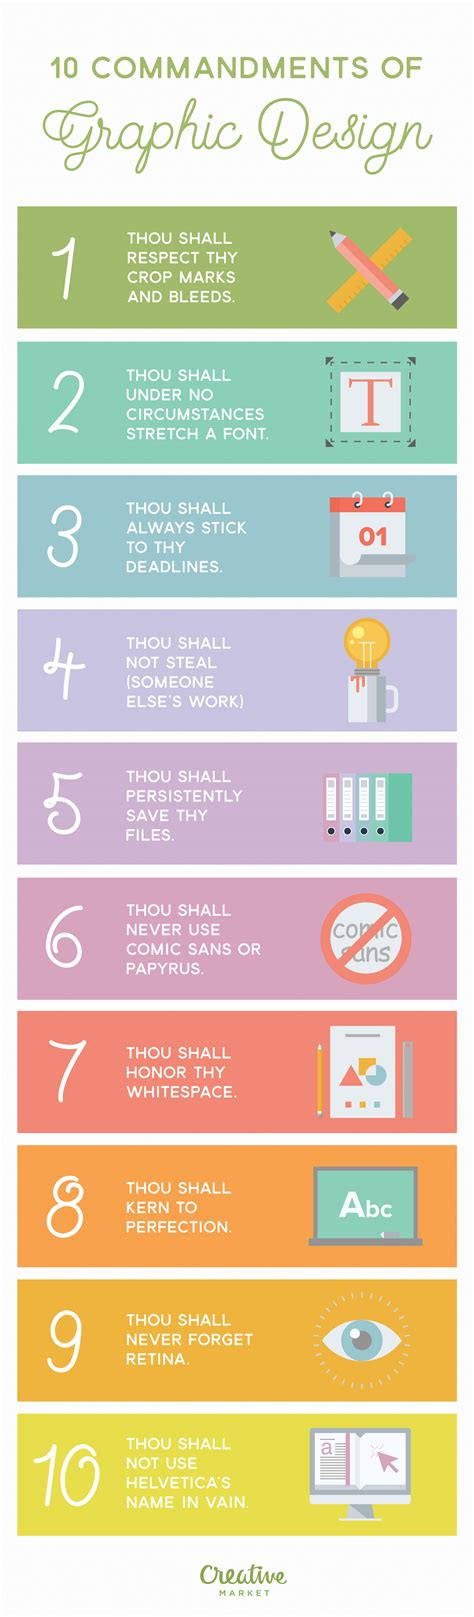 graphic design page layout rules infographic 10 commandments of graphic design creative